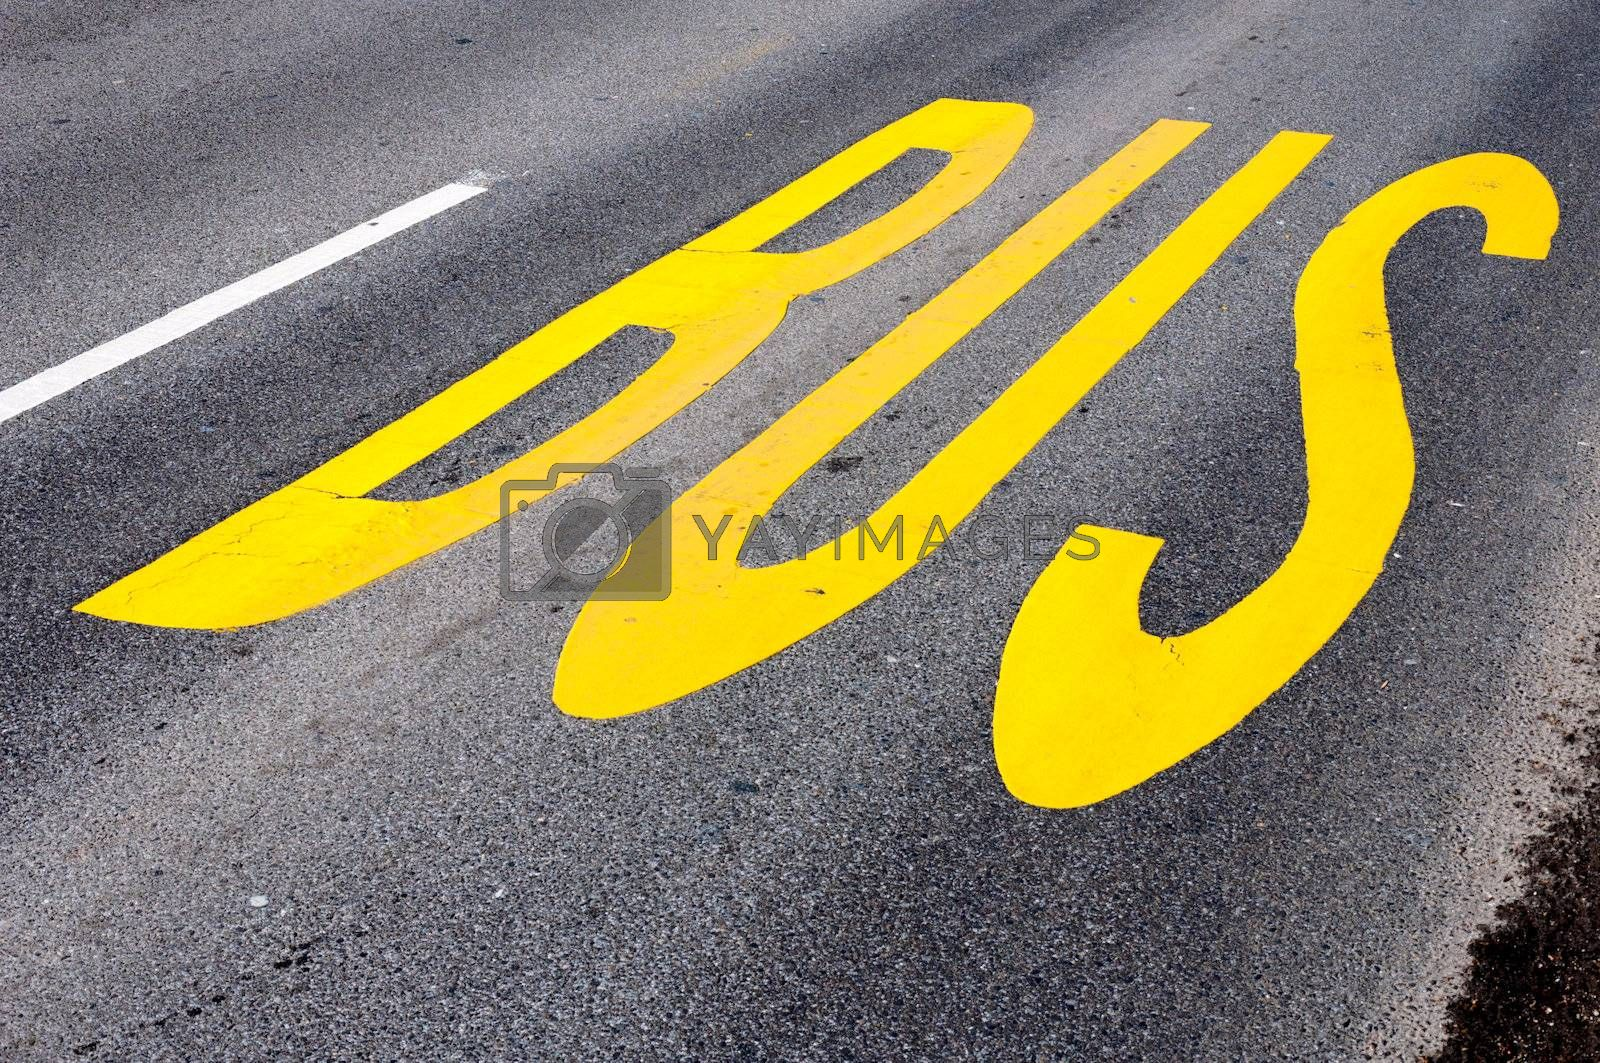 Yellow bus sign on the road